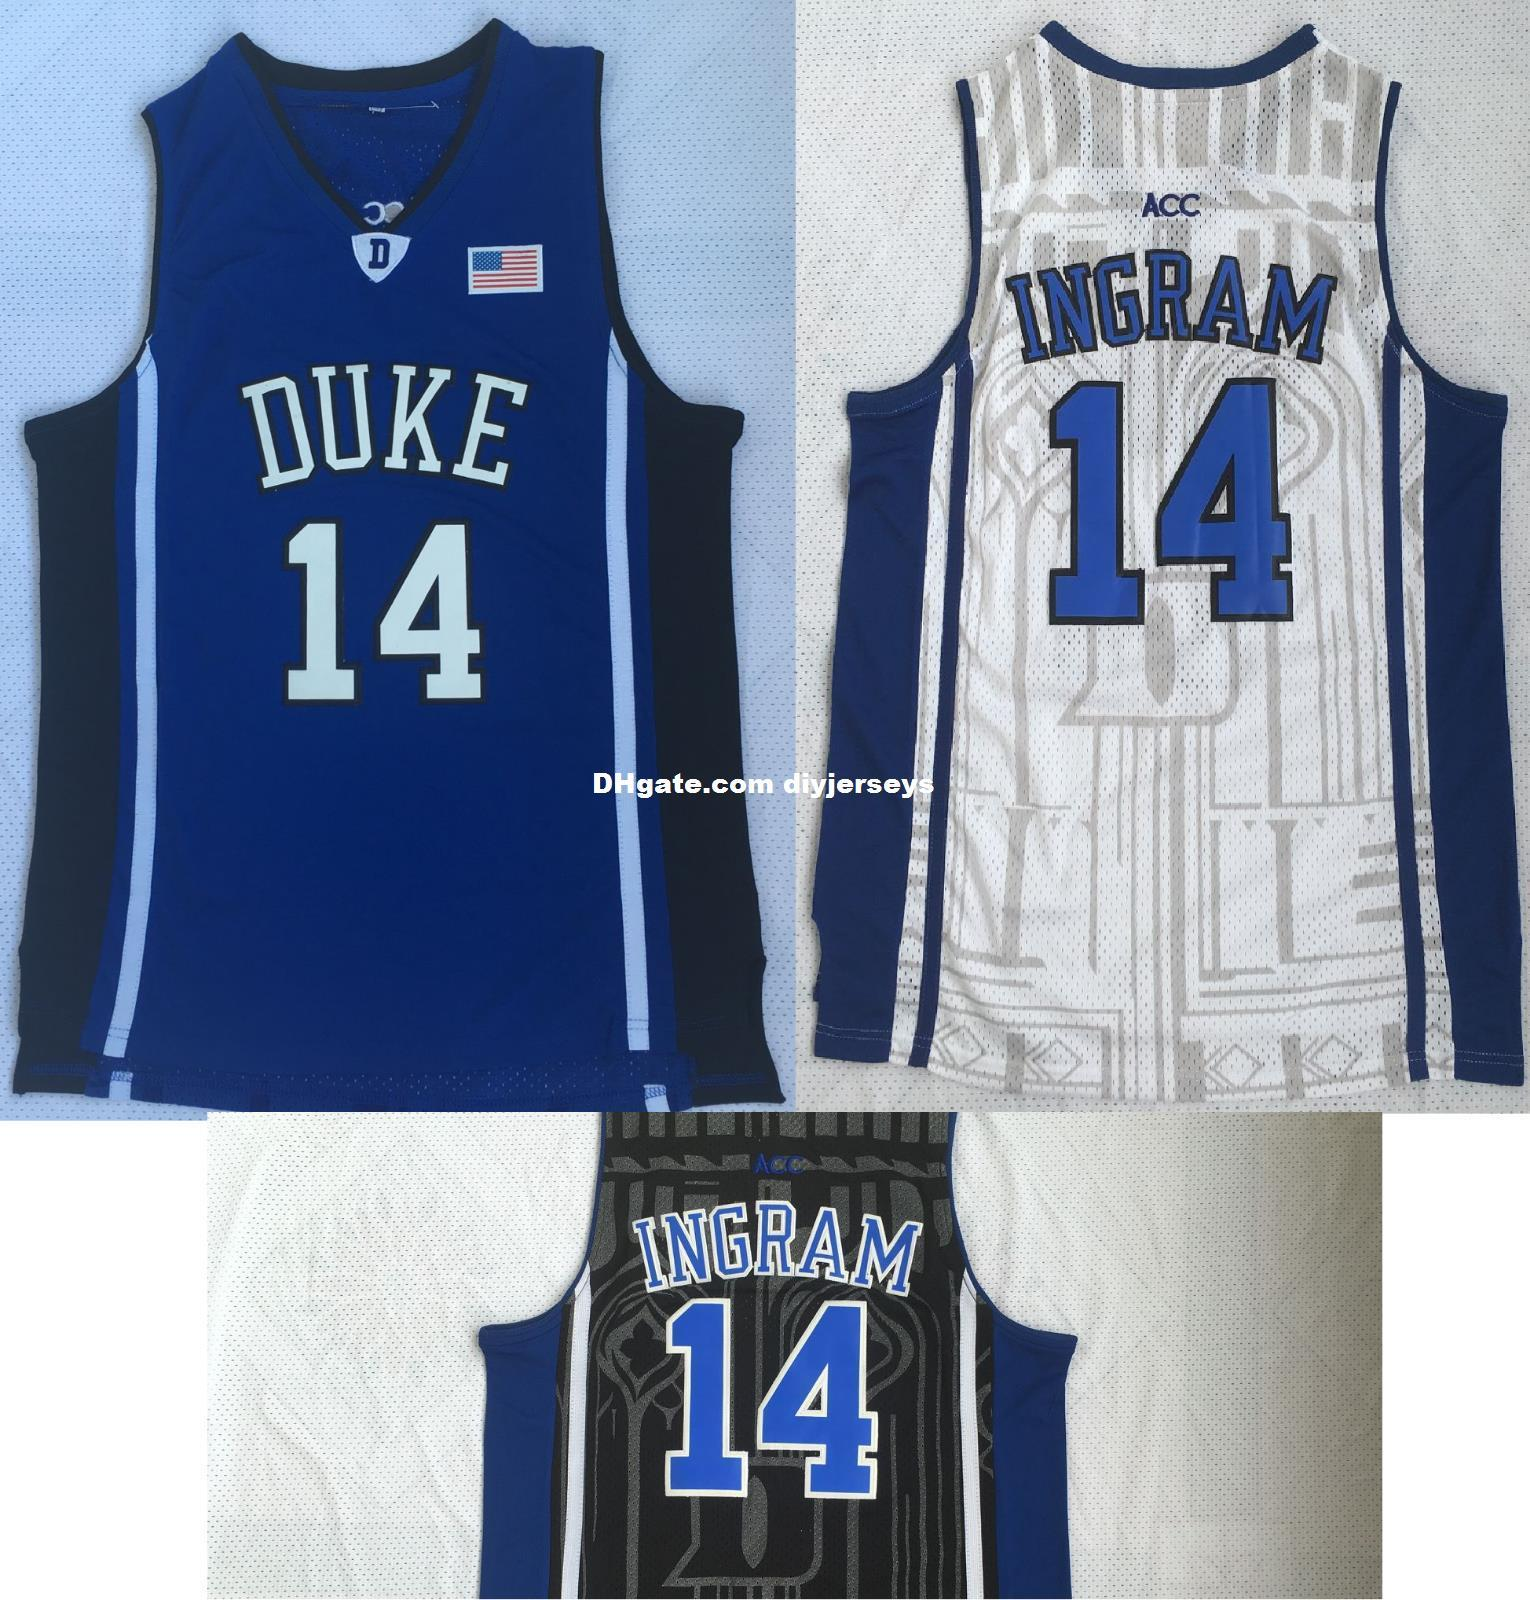 cf9e700bb2d Wholesale Cheap Brandon Ingram #14 College NCAA Mens Basketball Jersey White  Blue Black S - 2XL Wholesale Cheap Brandon Ingram #14 College Basketball  Jersey ...